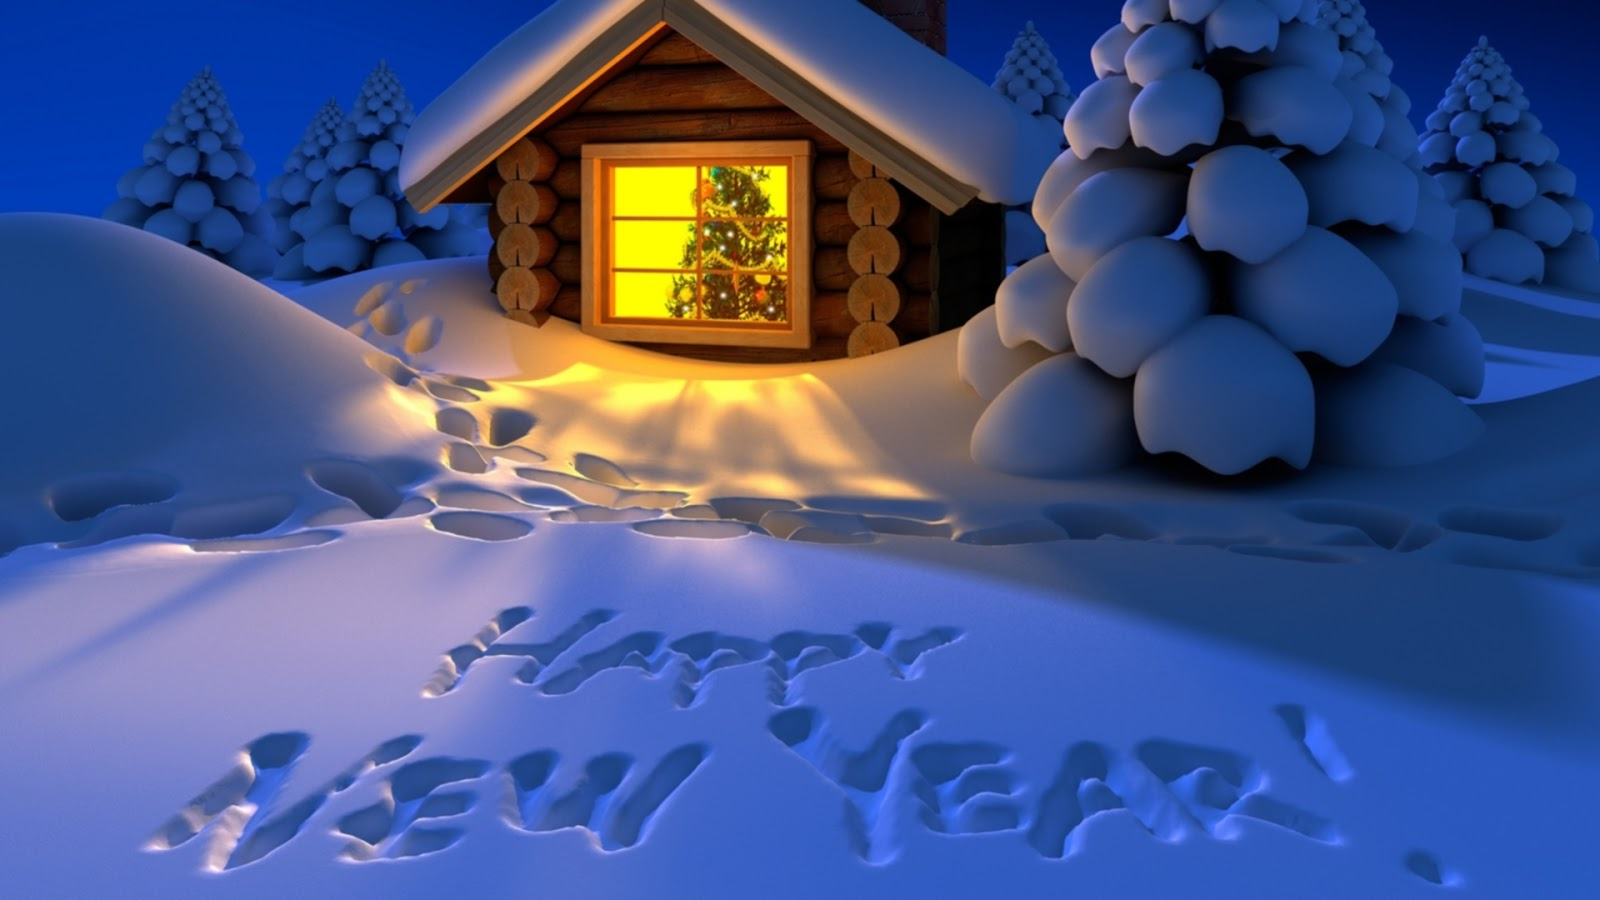 Happy New Year Desktop Wallpaper 11213   Baltana 1600x900